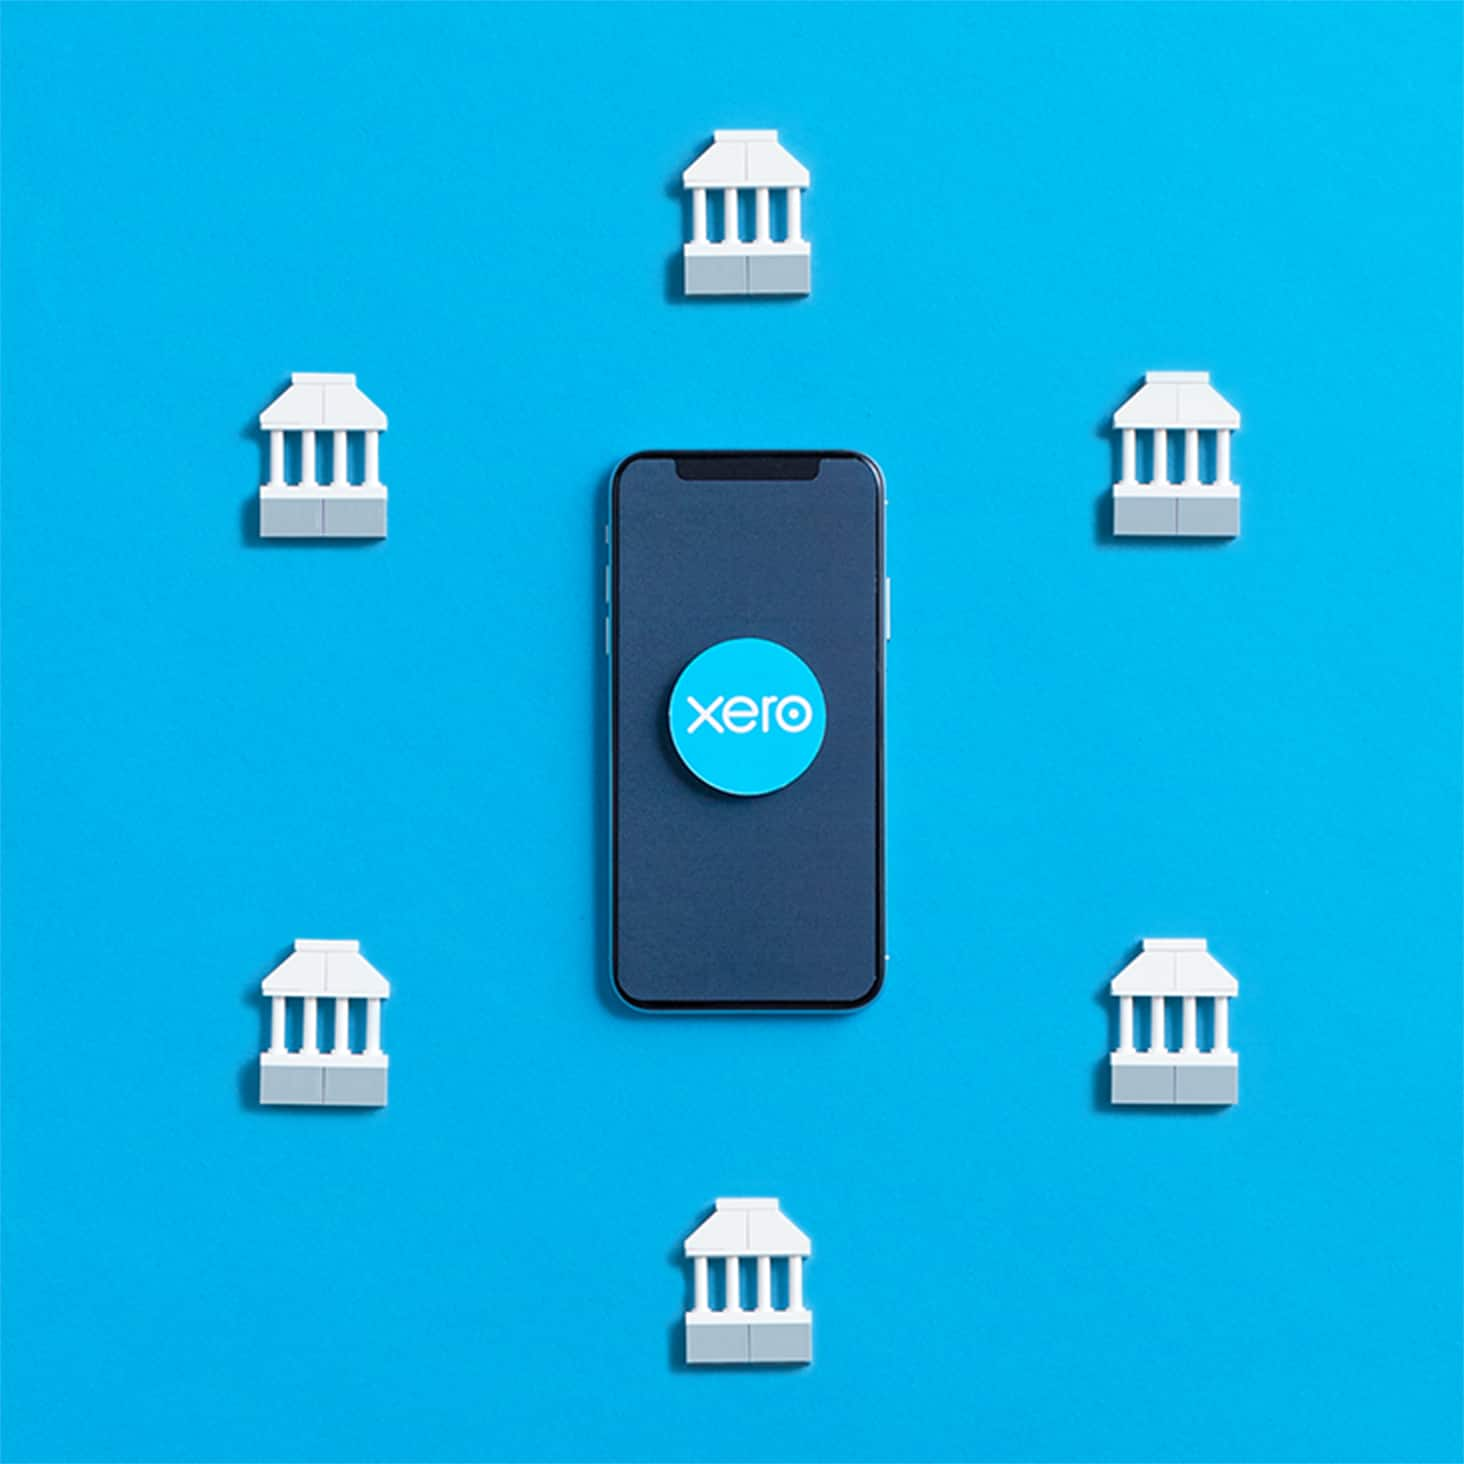 Many banks from multiple countries connect directly to Xero.